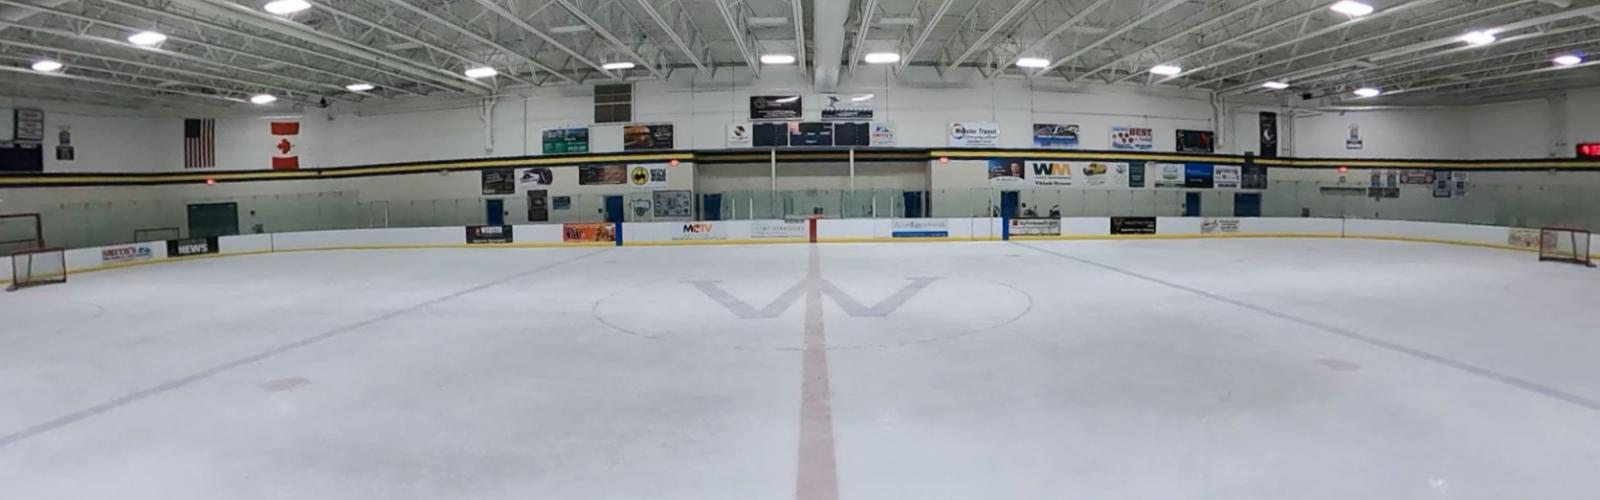 Alice Noble Ice Arena